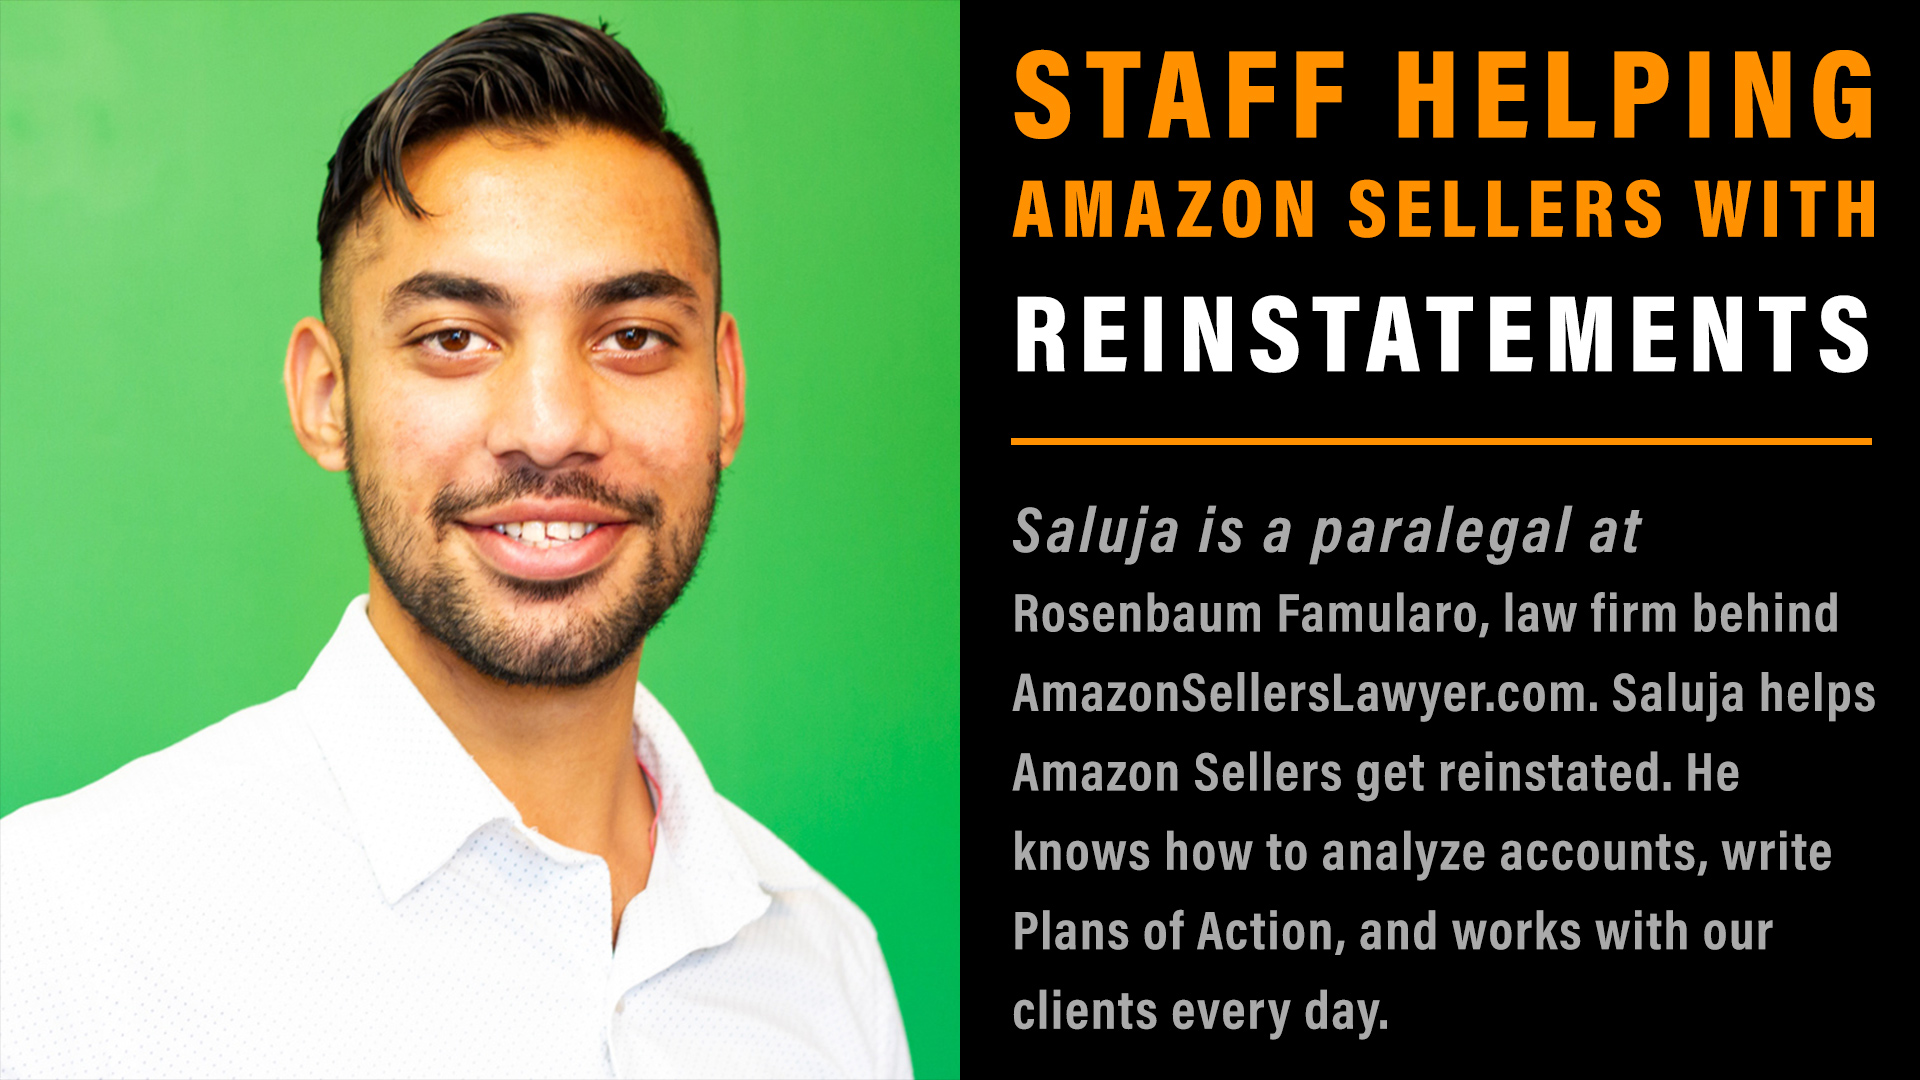 Staff Helping Amazon Sellers with Reinstatement